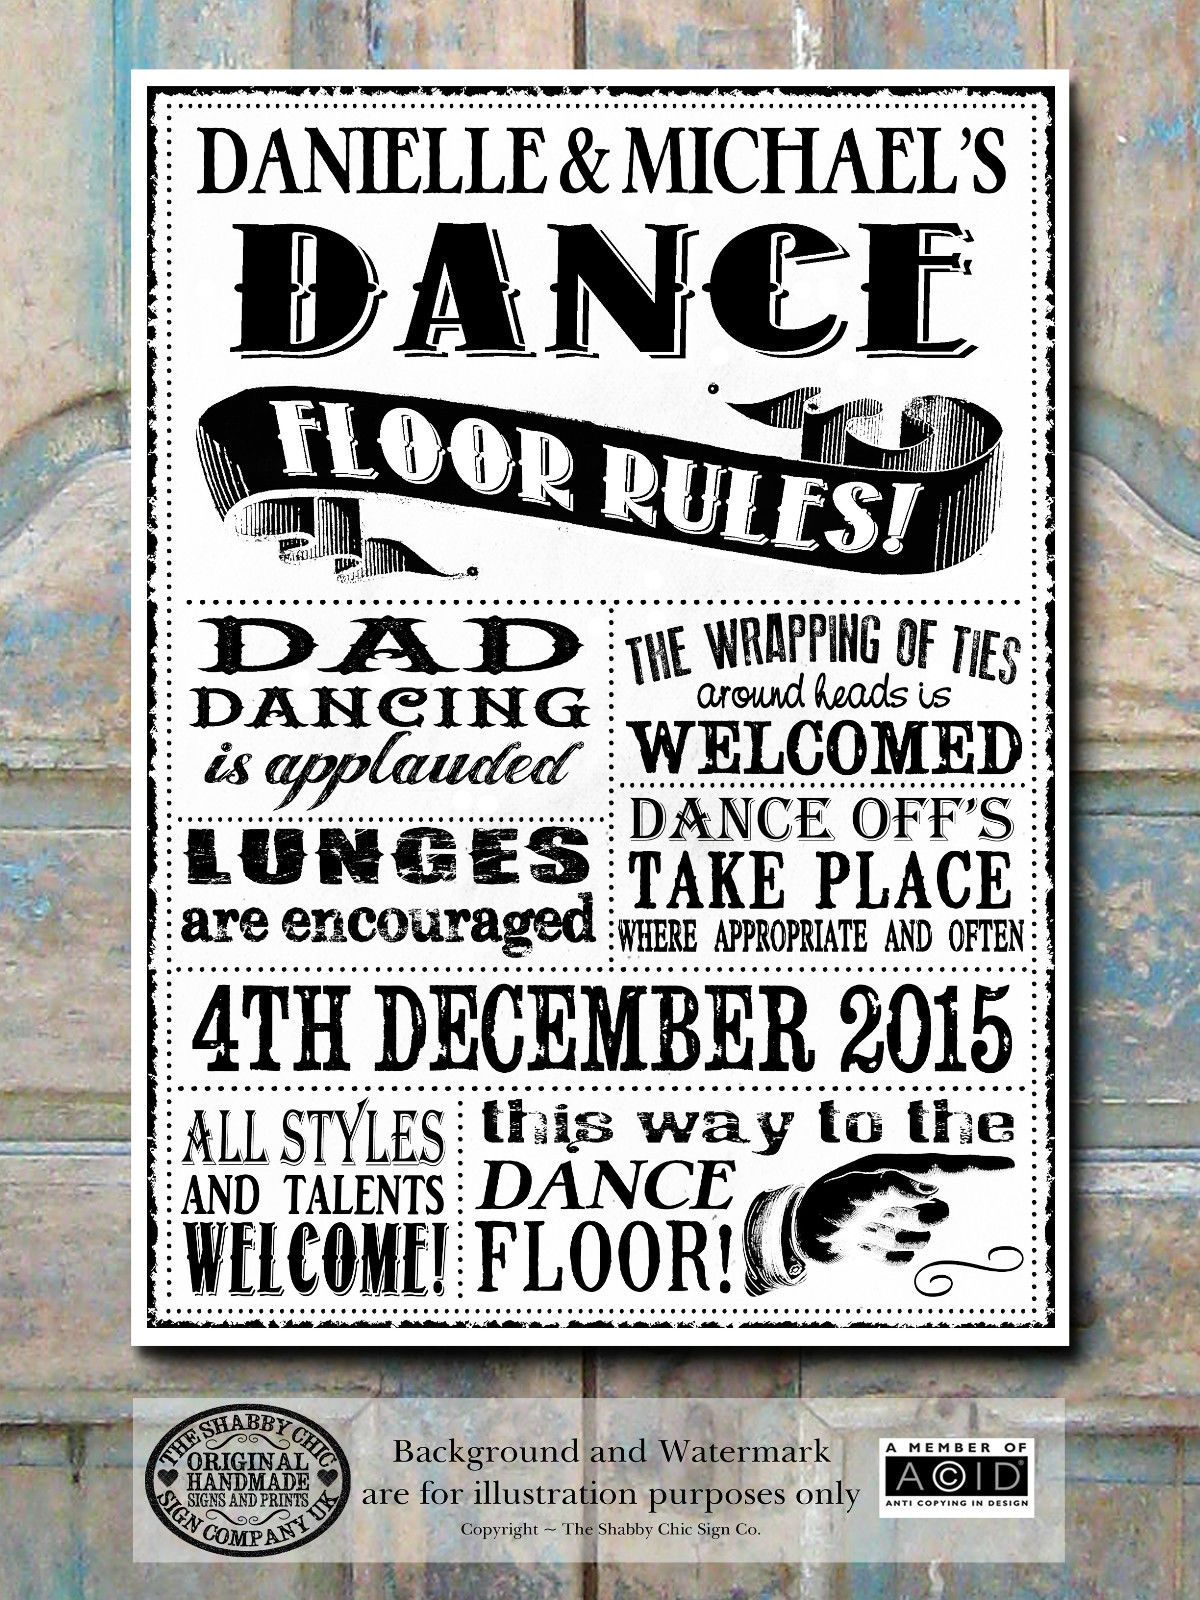 Personalised chalk rules of the dance floor sign banner any widescreen diy wedding and projects desktop hd